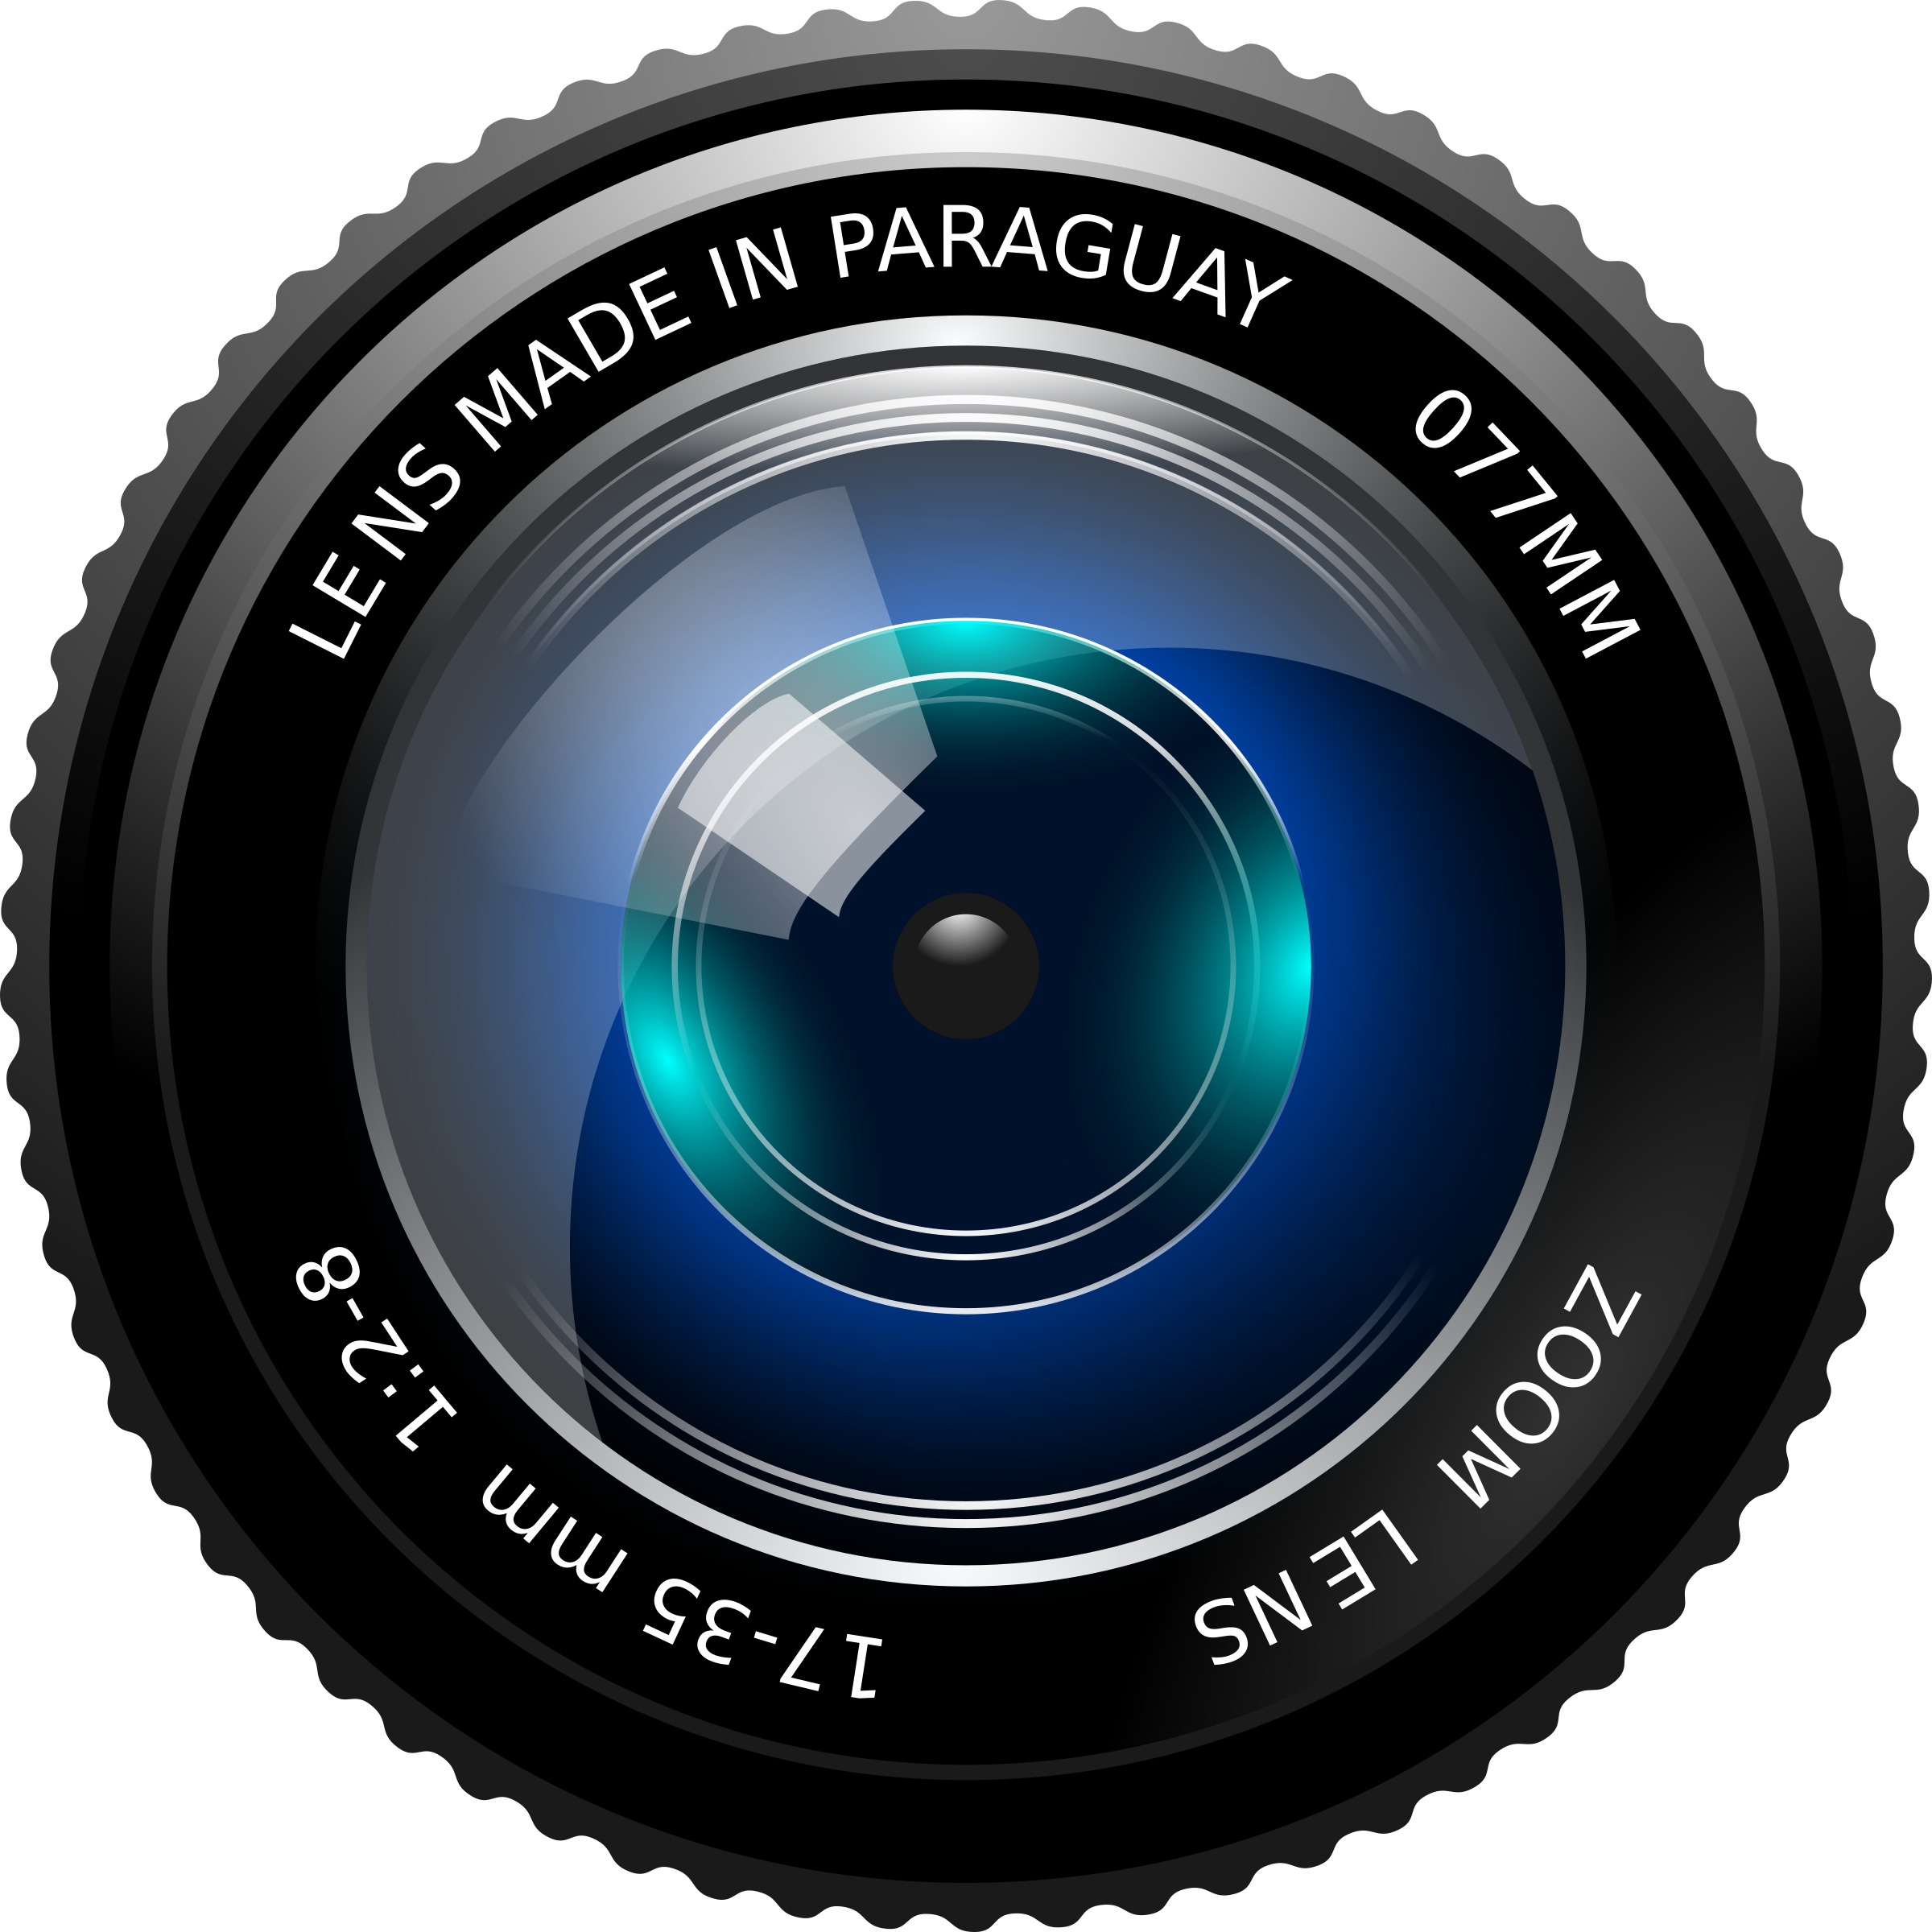 Free Download Lens Png Images image #1341